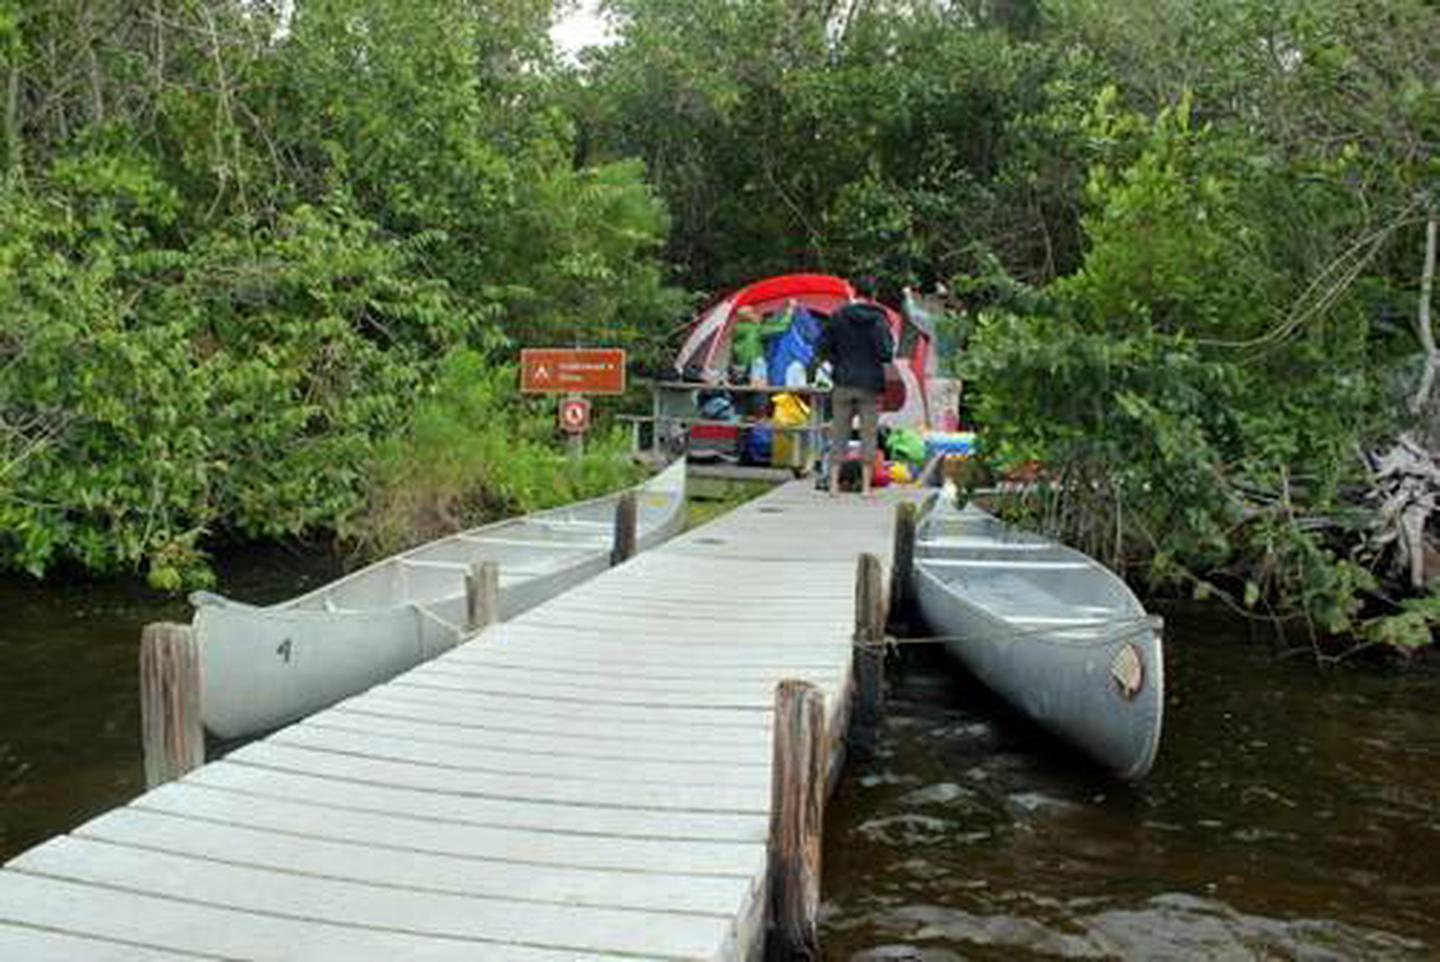 A dock leads to a ground campsite with people setting up a tentLostman's Five Ground Campsite